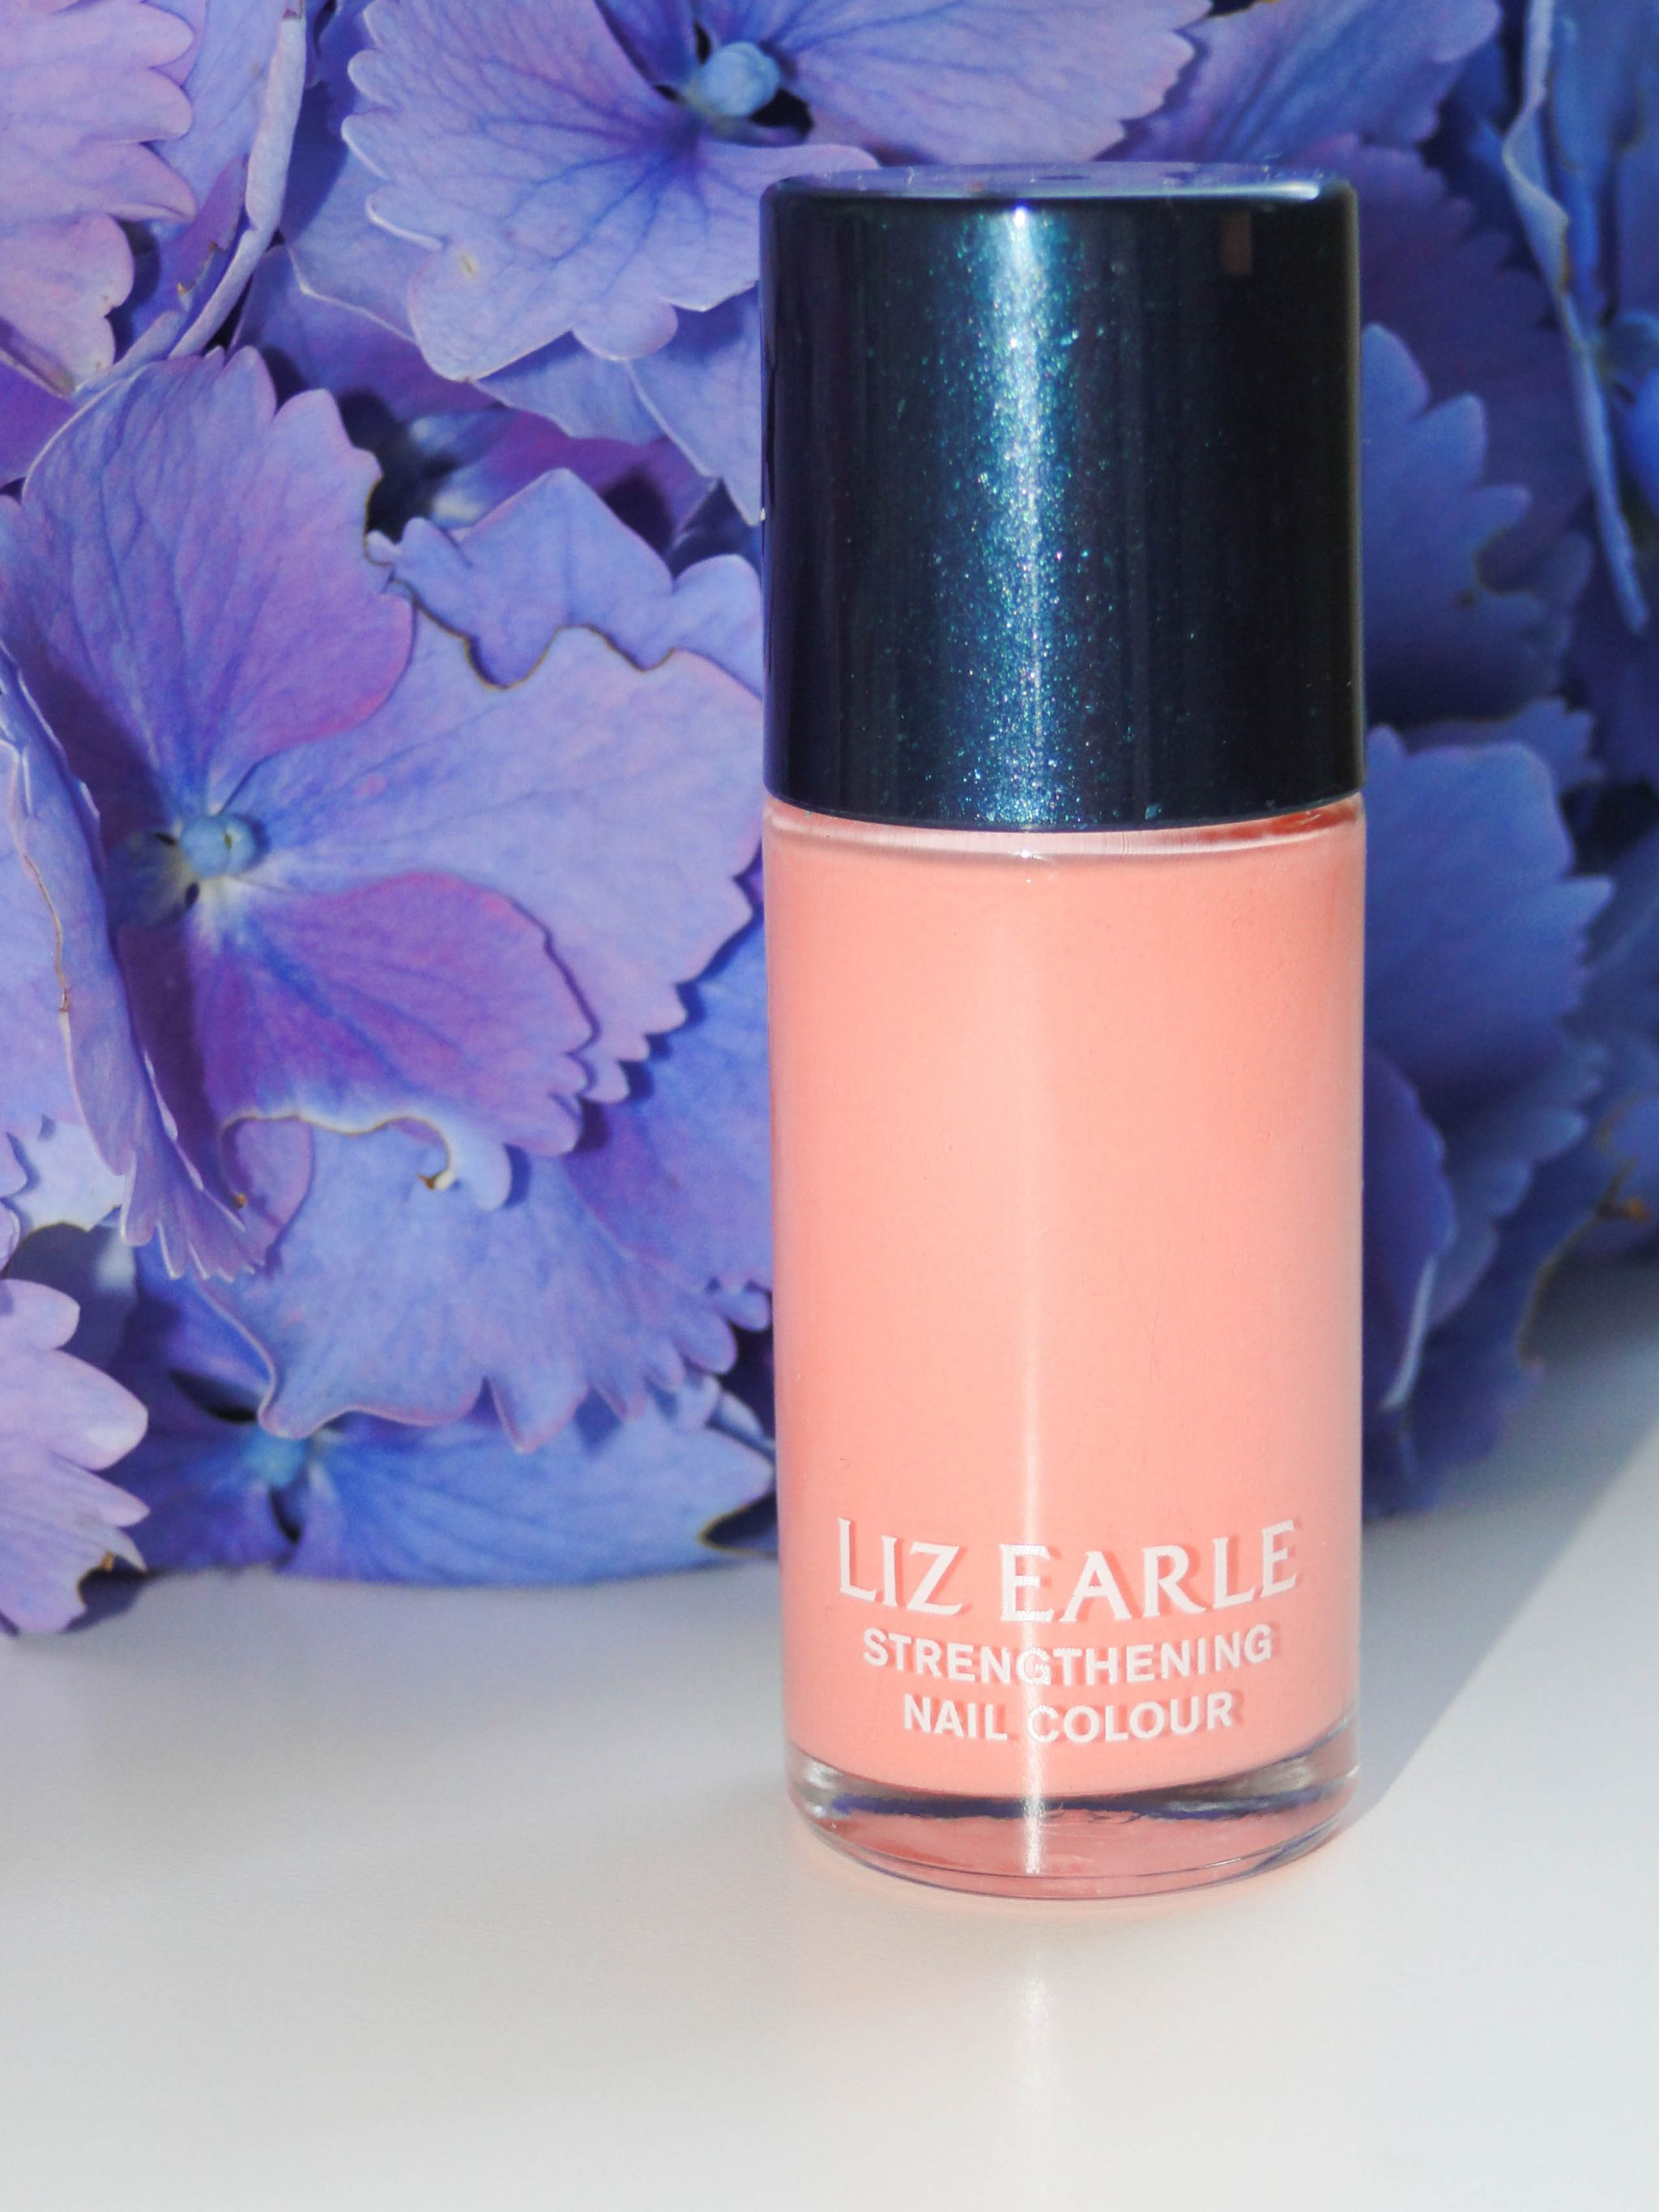 Liz Earle Strengthening Nail Colour in Awakening